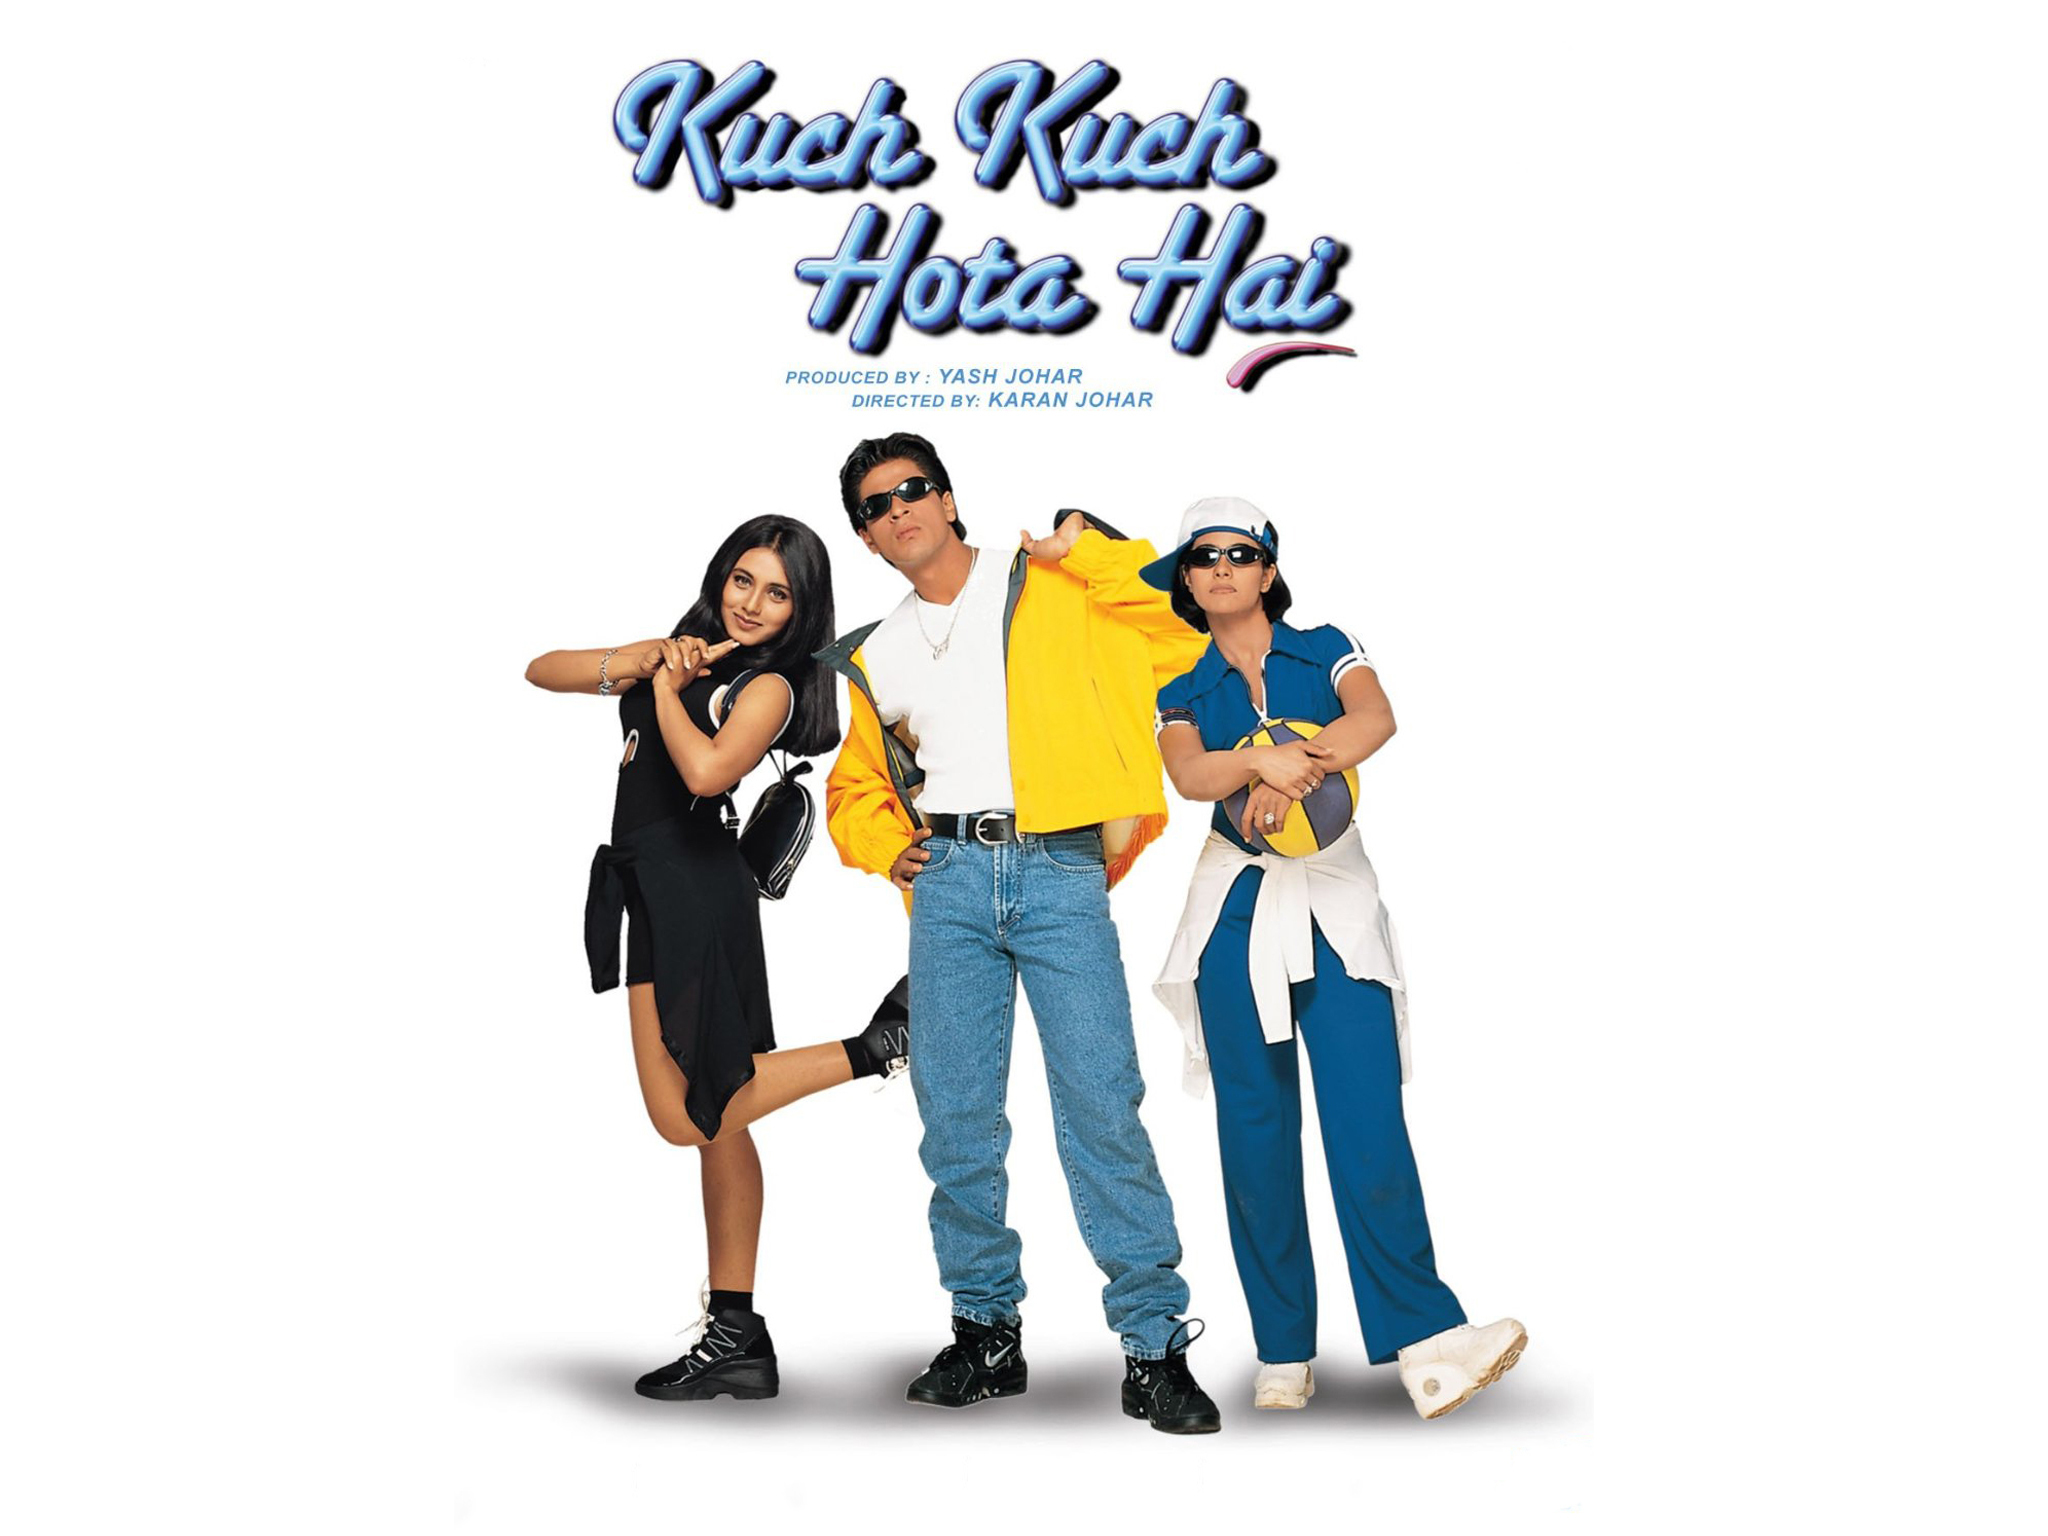 Bollywood movie: Kuch Kuch Hota Hai